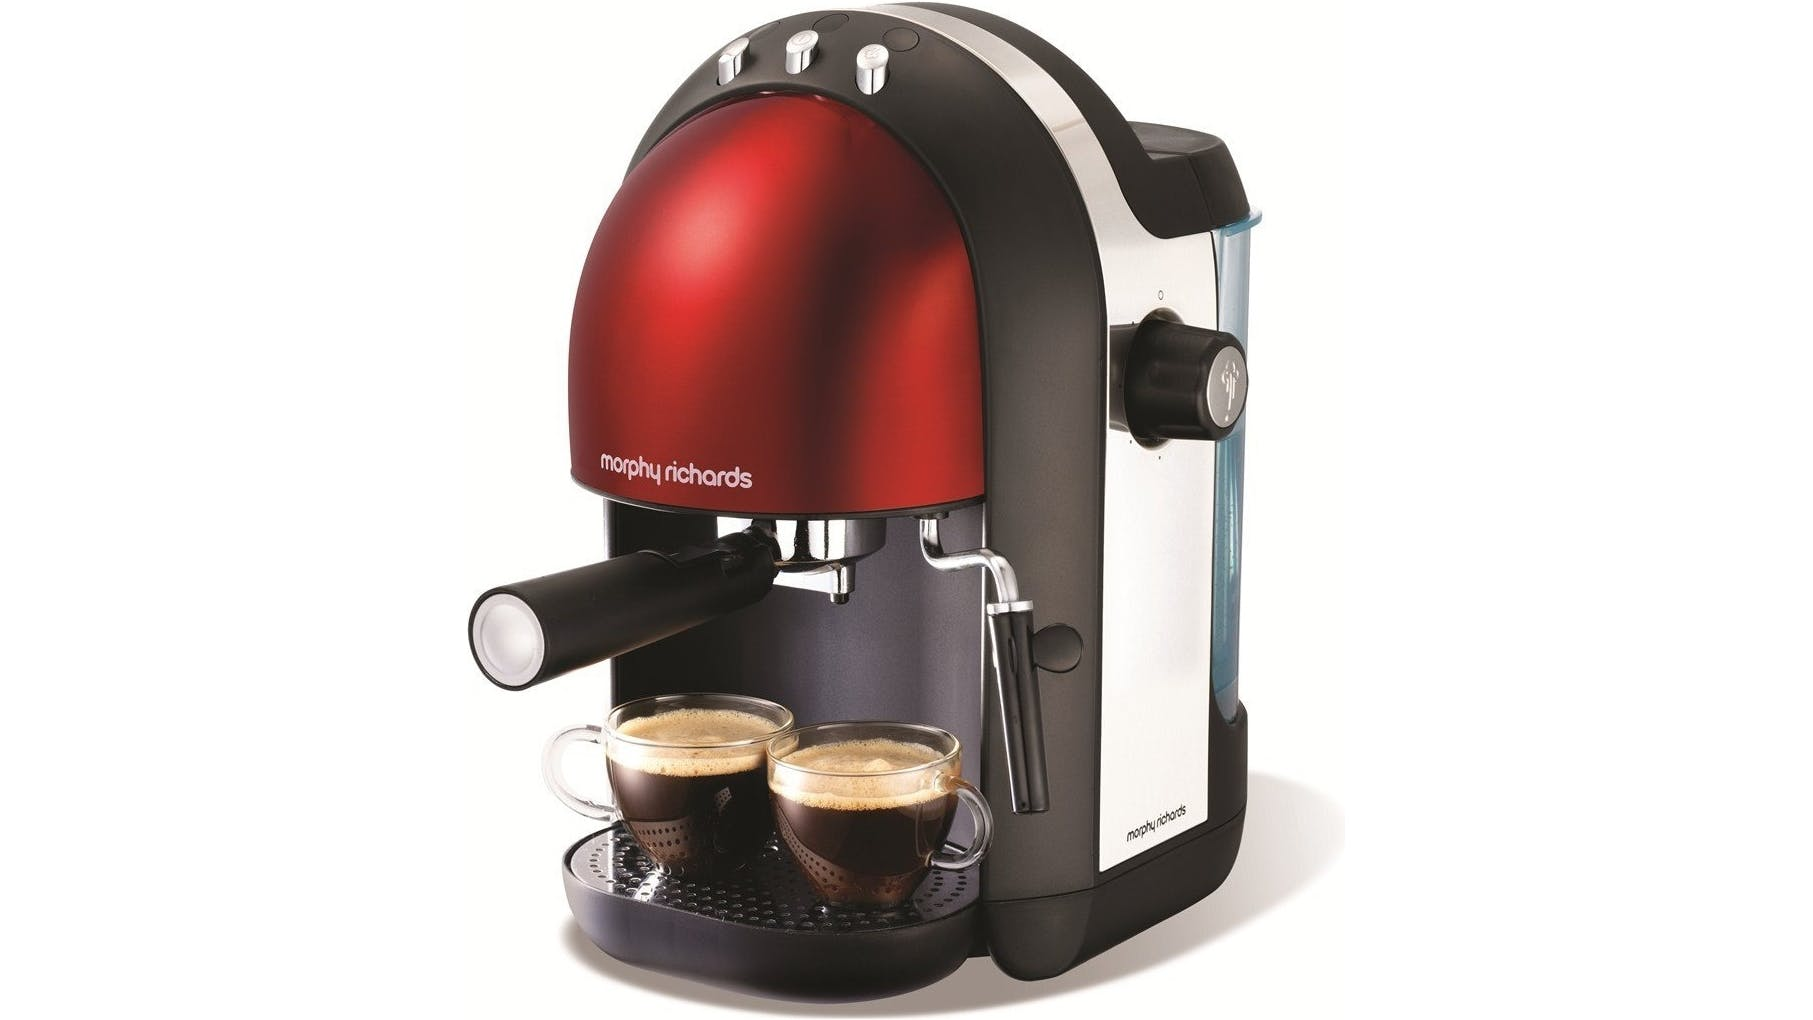 Morphy Richards Accents Espresso Coffee Machine - Red Harvey Norman Malaysia